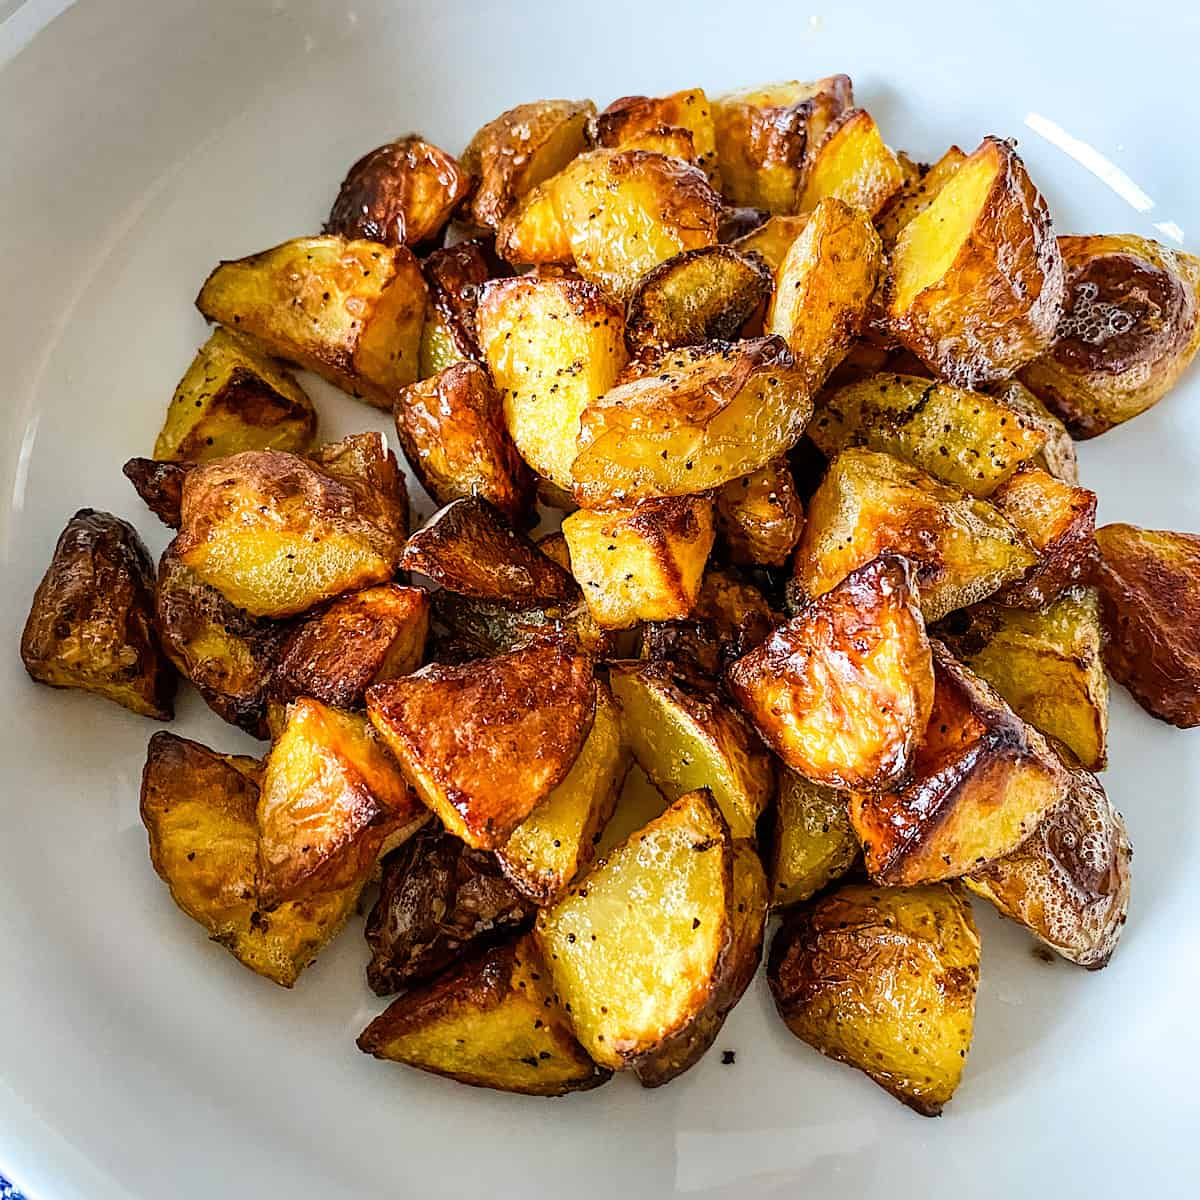 Roasted Potatoes on a white plate.